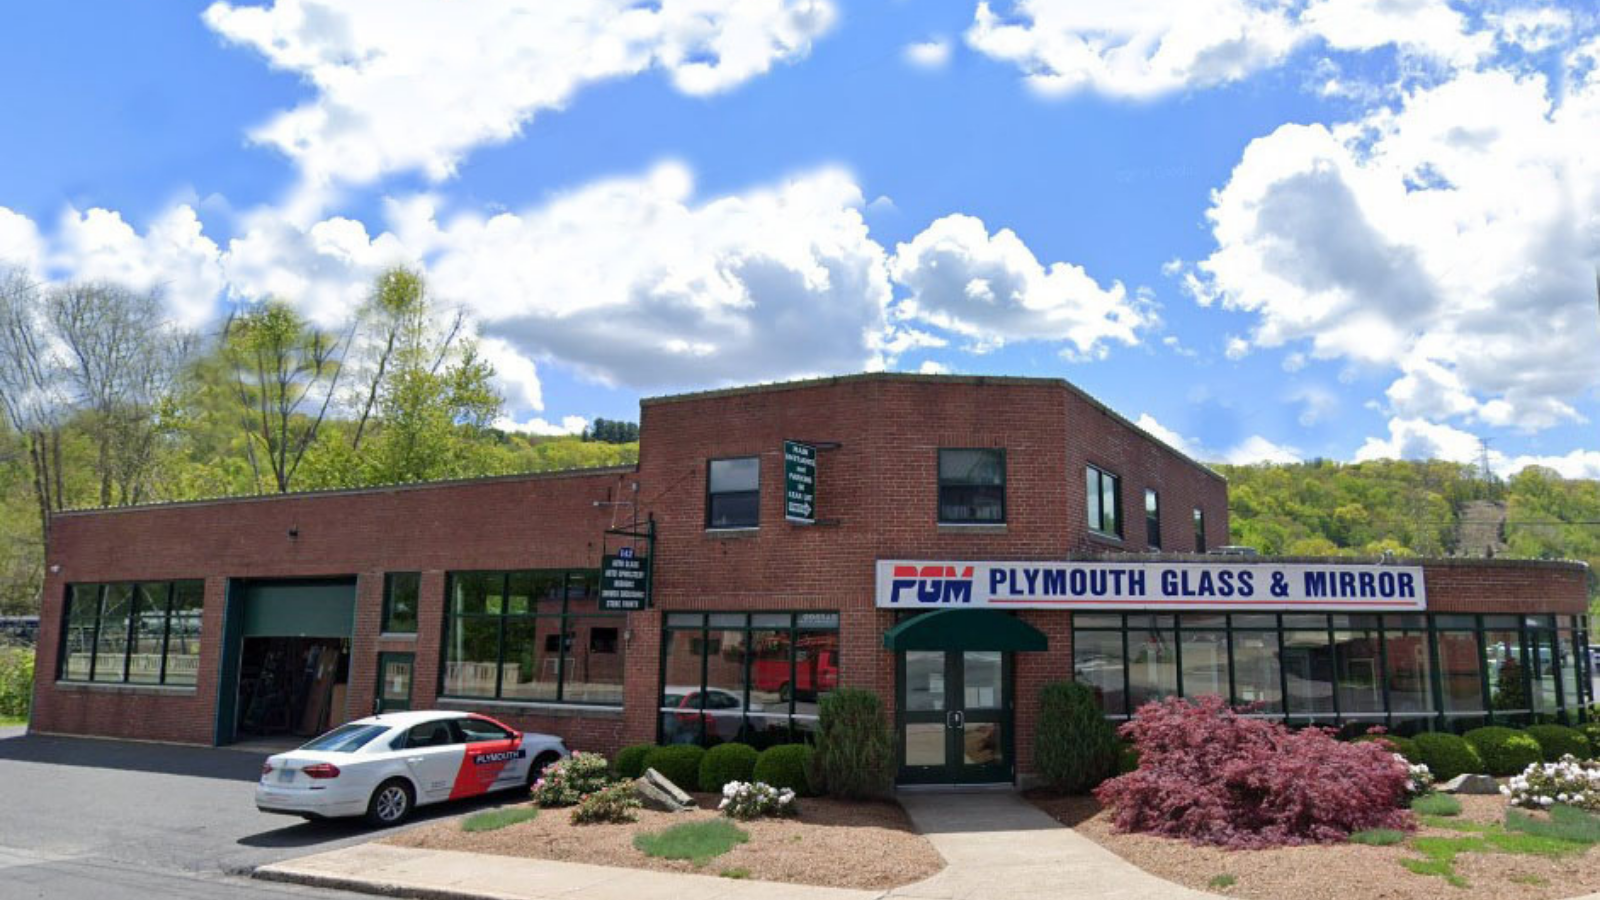 plymouth glass and mirror auto glass replacement shop